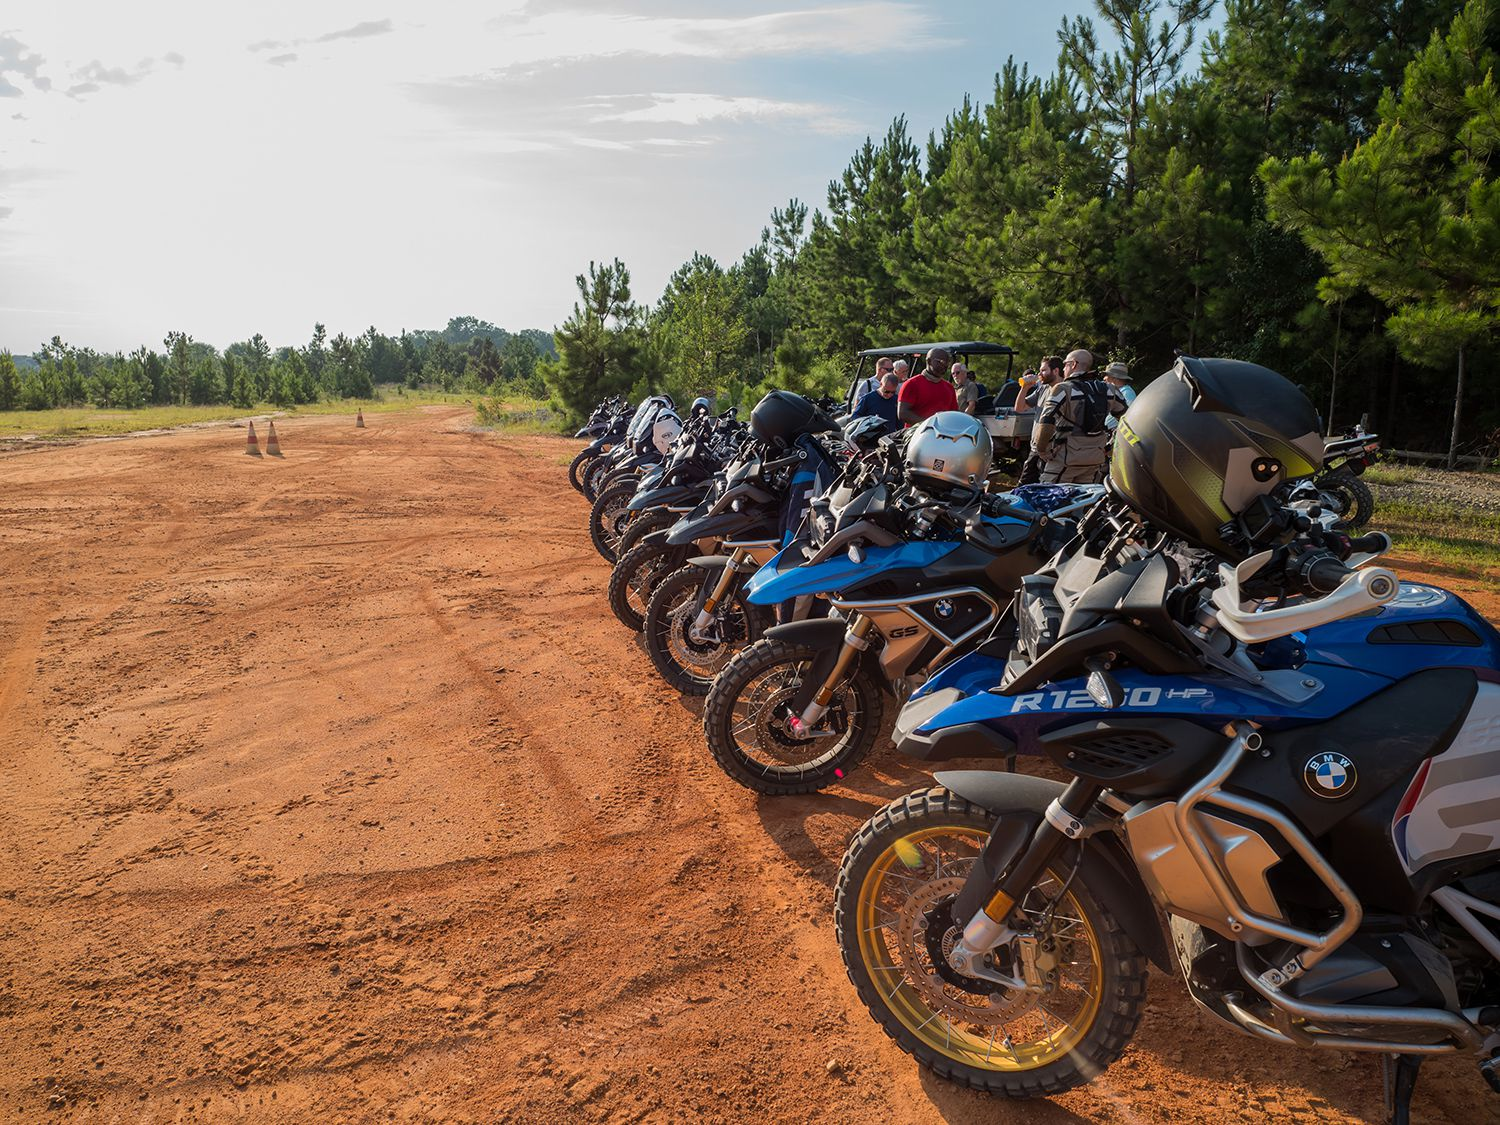 Using BMW-supplied motorcycles allow you to get the most out of the two-day class.